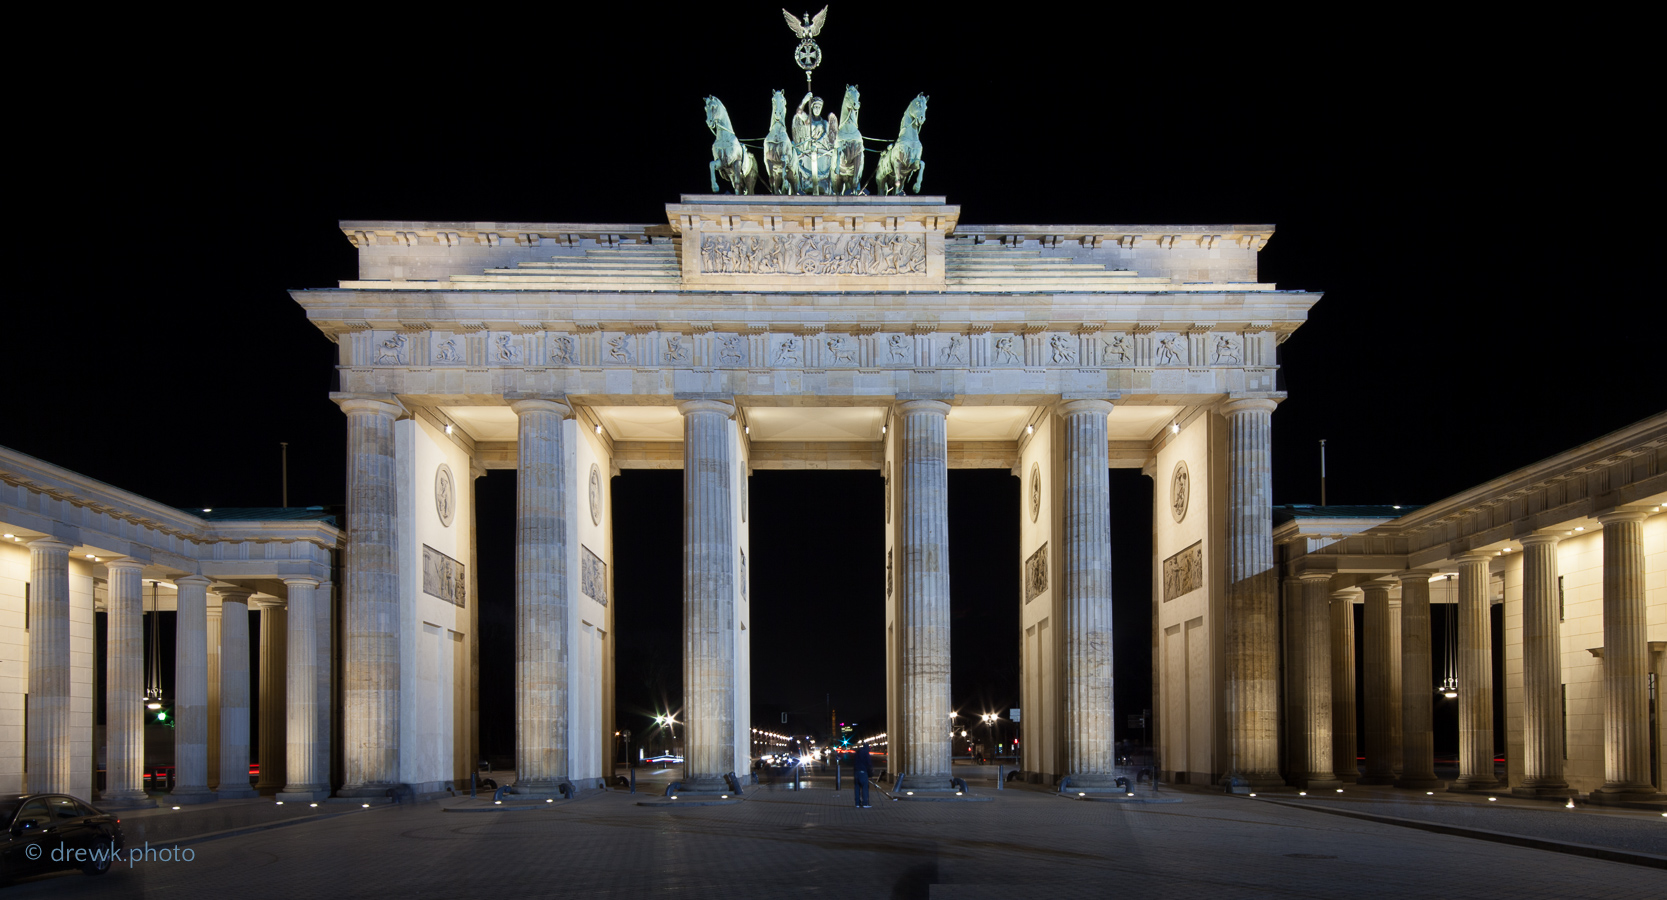 <alt>Brandenburg Gate, Berlin</alt><br/>